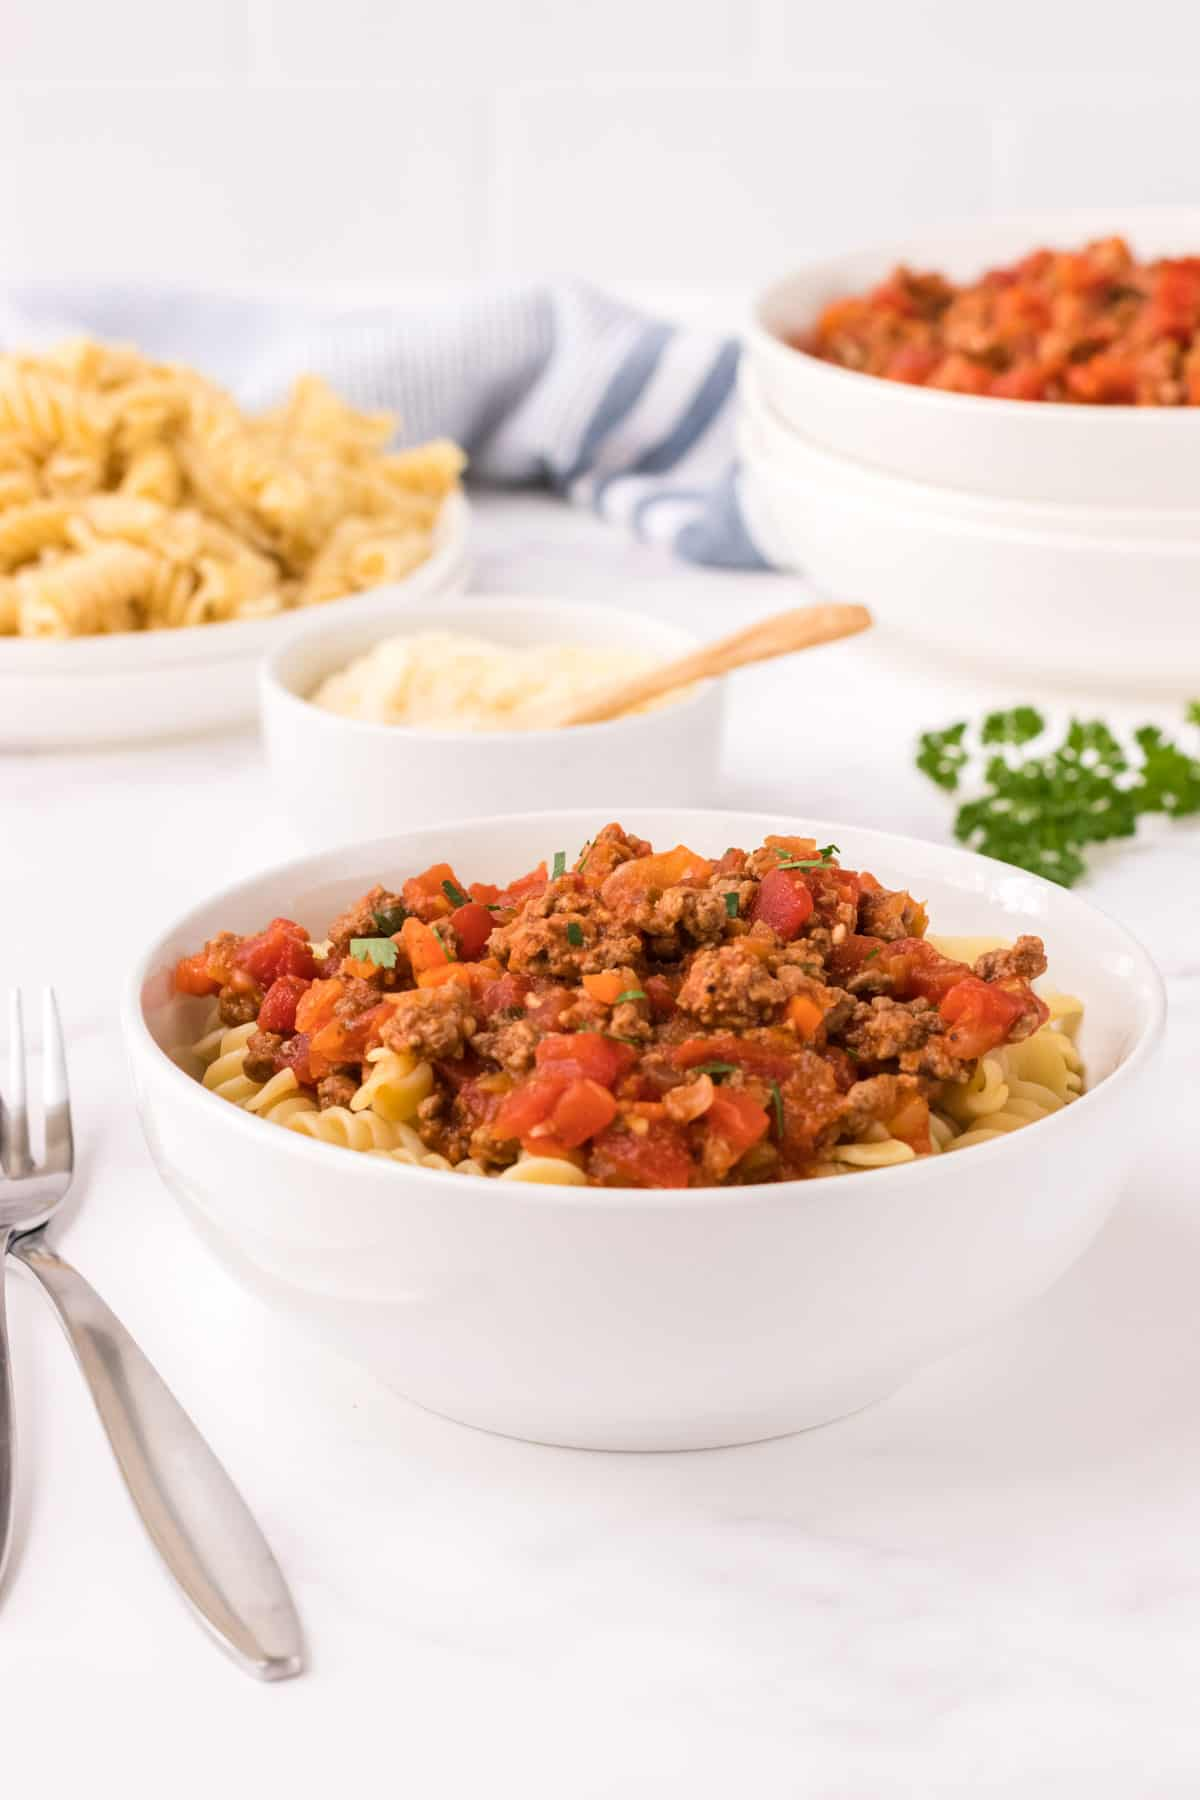 White bowl of chunky spaghetti meat and vegetable sauce with bowls of pasta, grated parmesan, more sauce and parsley in background.